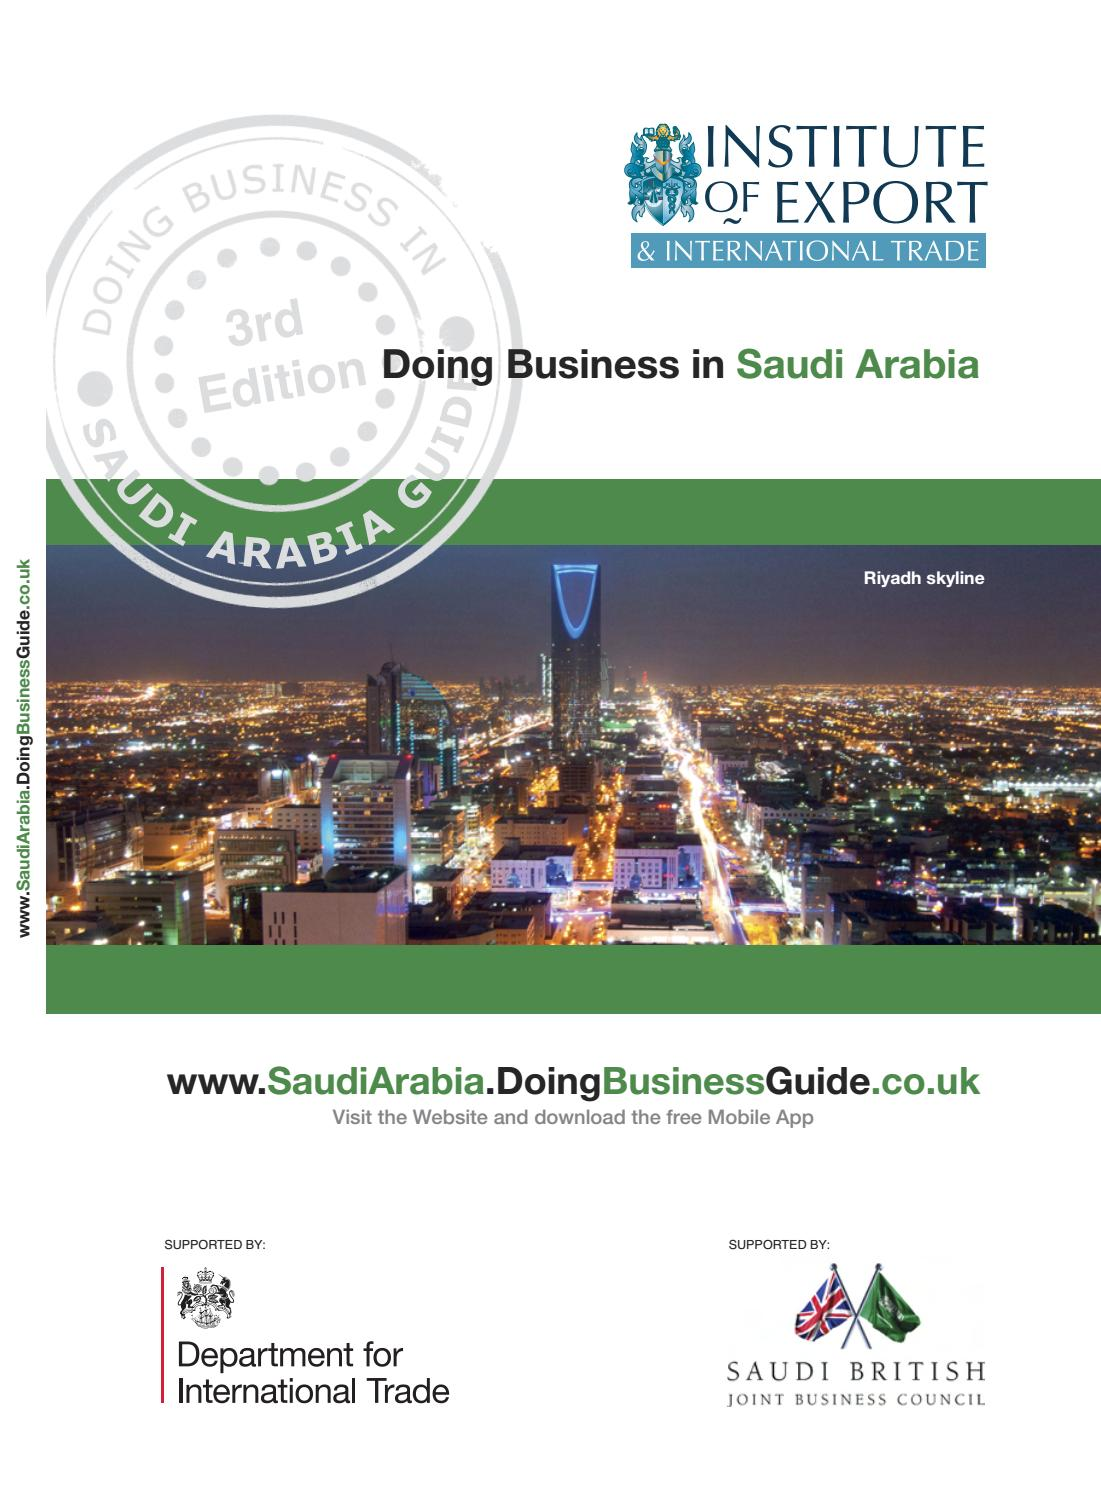 Doing Business in Saudi Arabia Guide (3rd Edition) by Doing Business